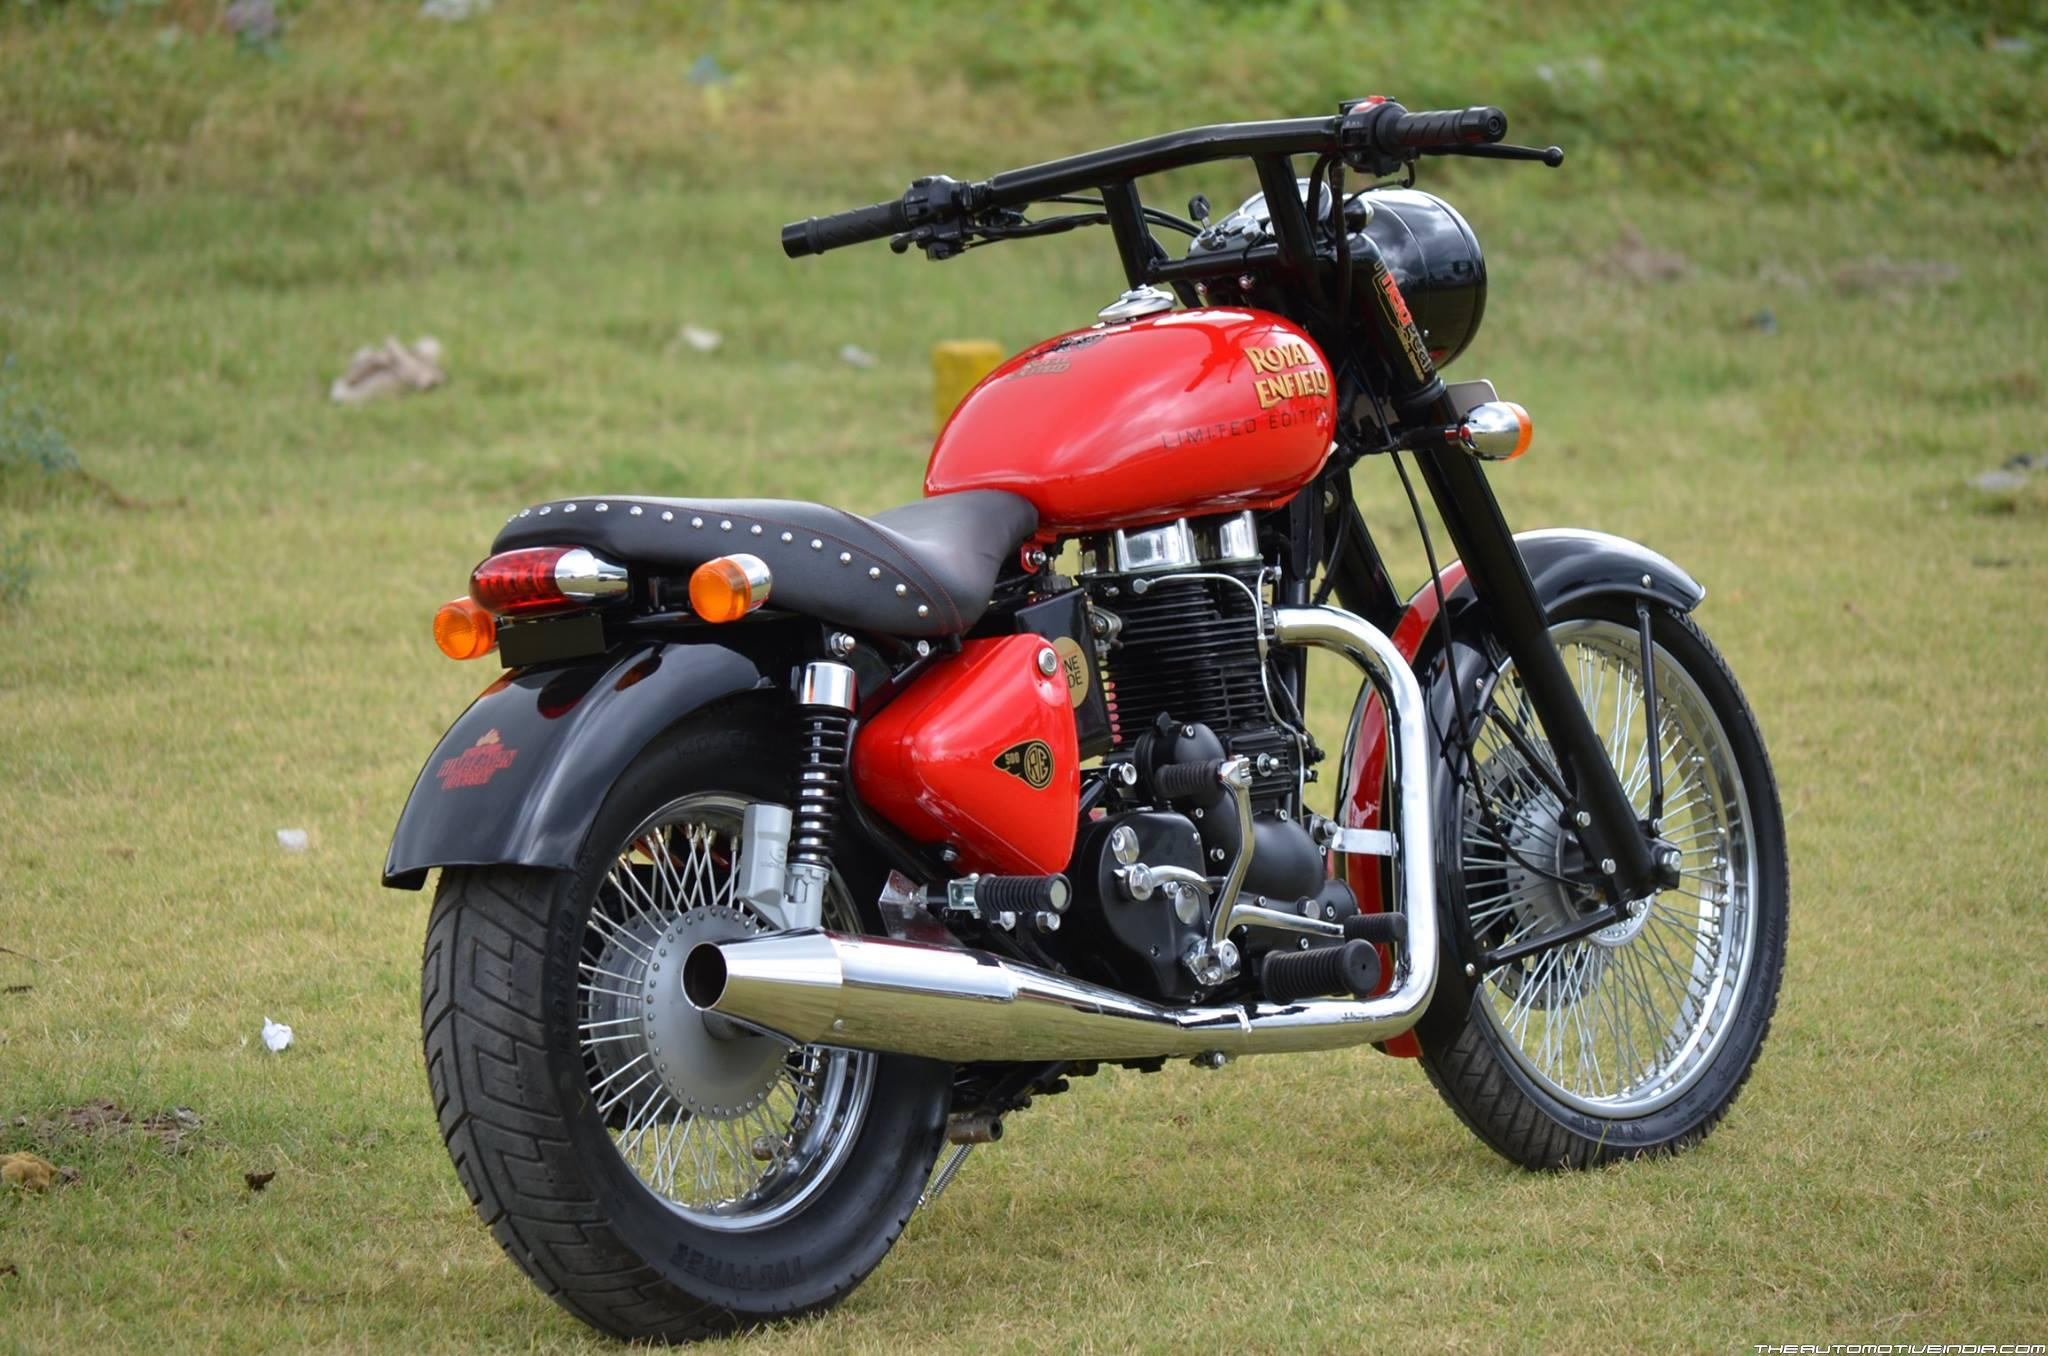 Bullet Bike Modified Wallpapers New Royal Enfield Classic 350 Modified 1629243 Hd Wallpaper Backgrounds Download